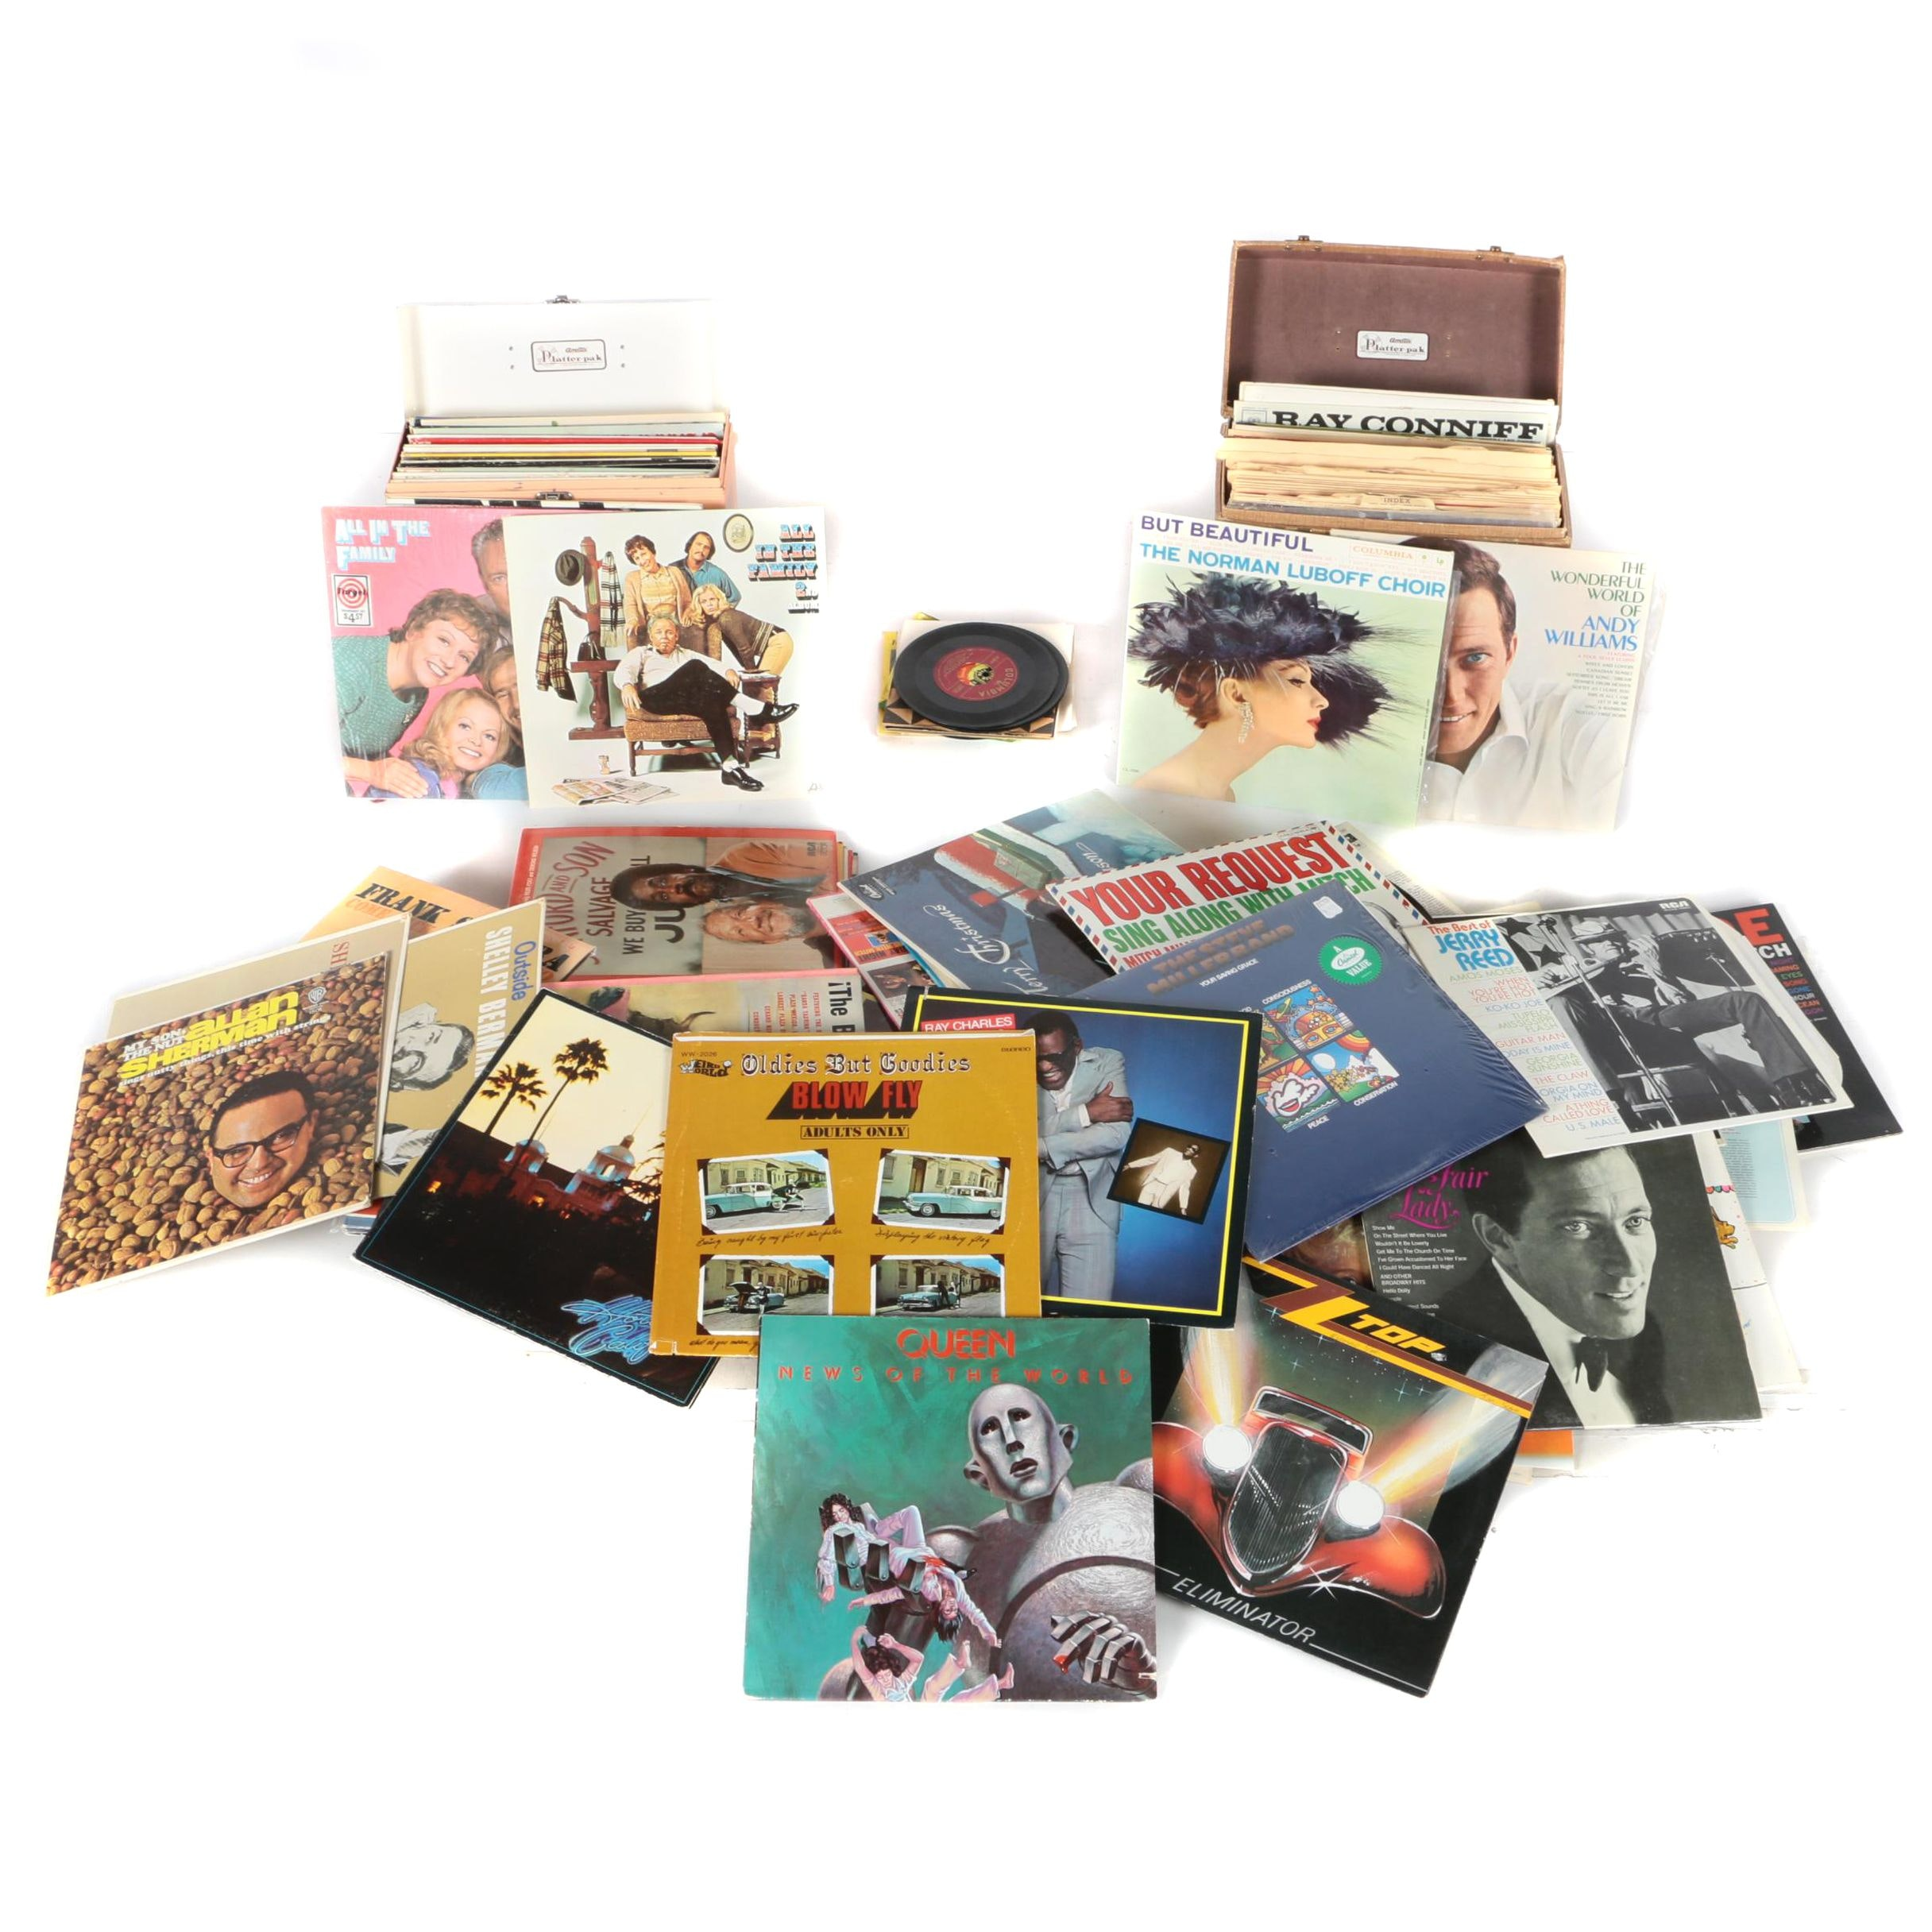 Classic Rock, Soundtracks, Easy Listening and More 45 rpm and LP Records